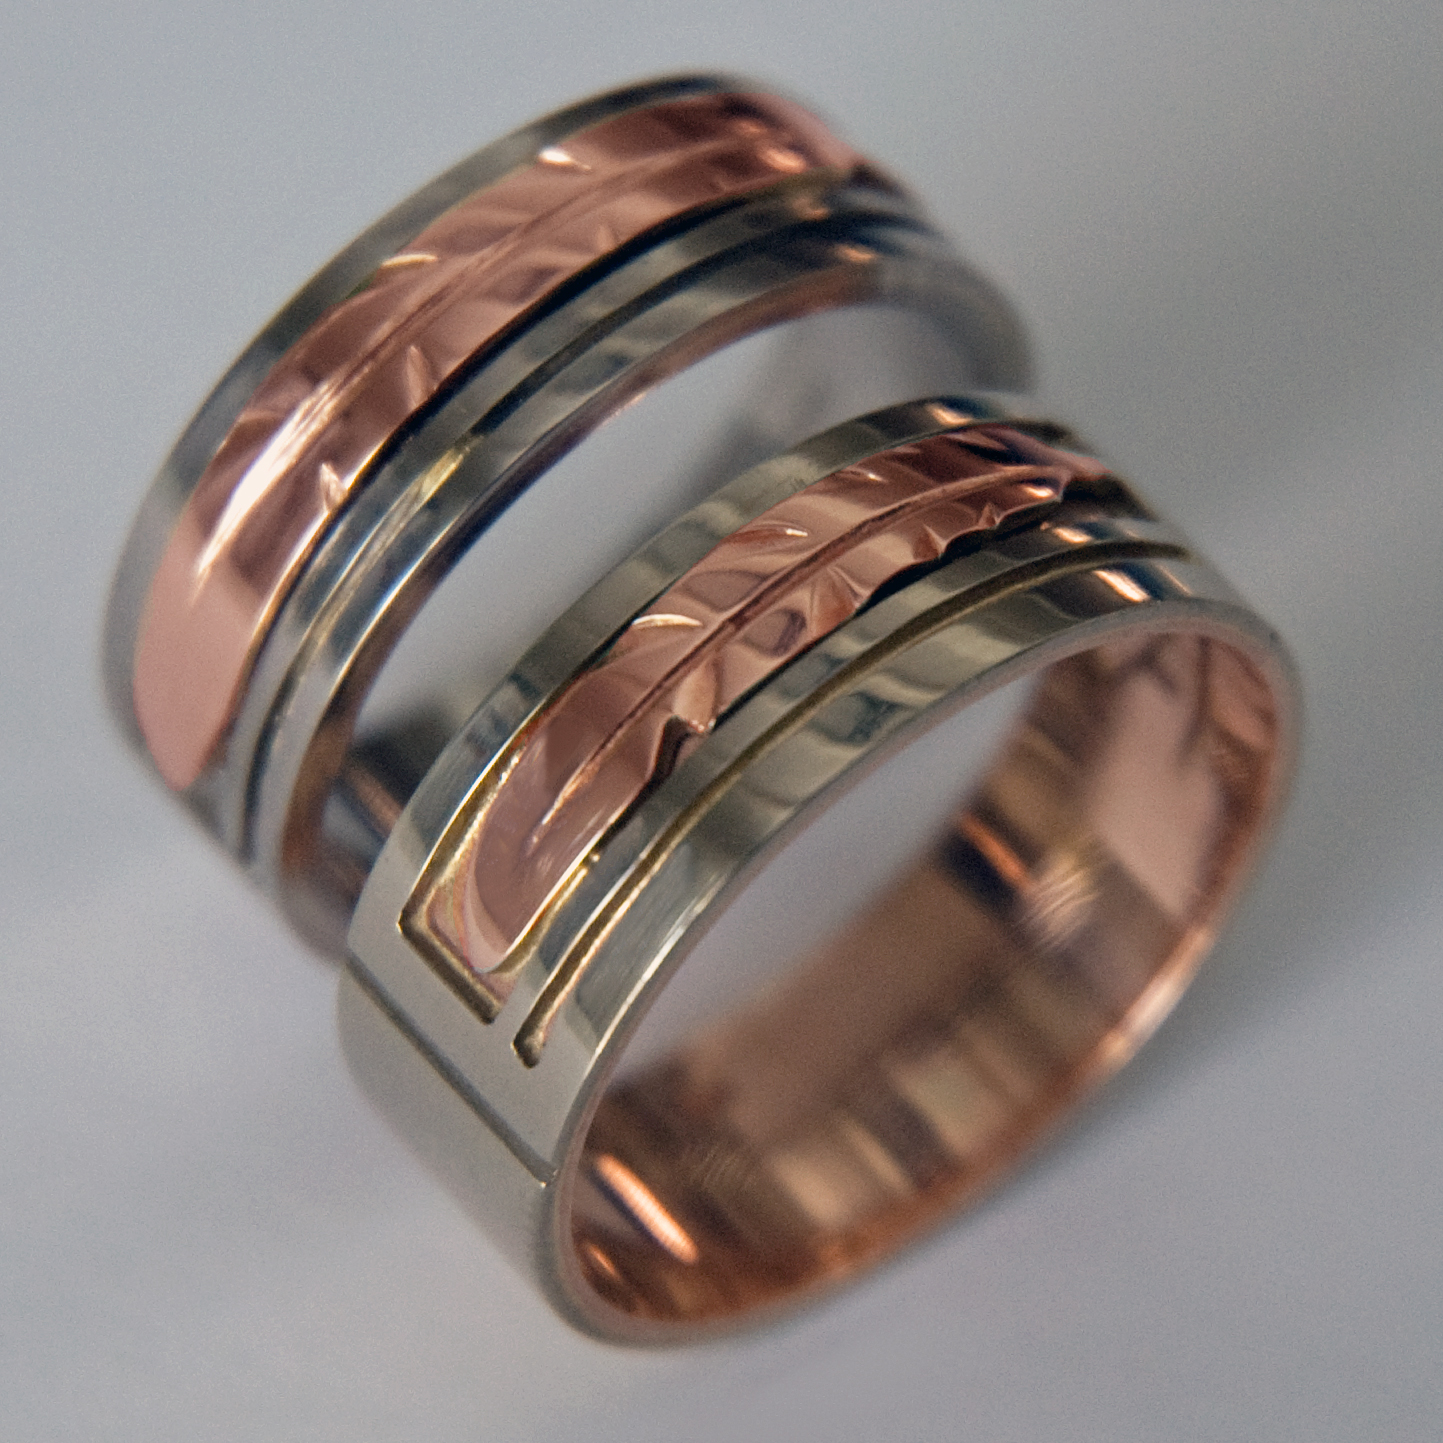 native american wedding rings vision of the eagle - Native American Wedding Rings